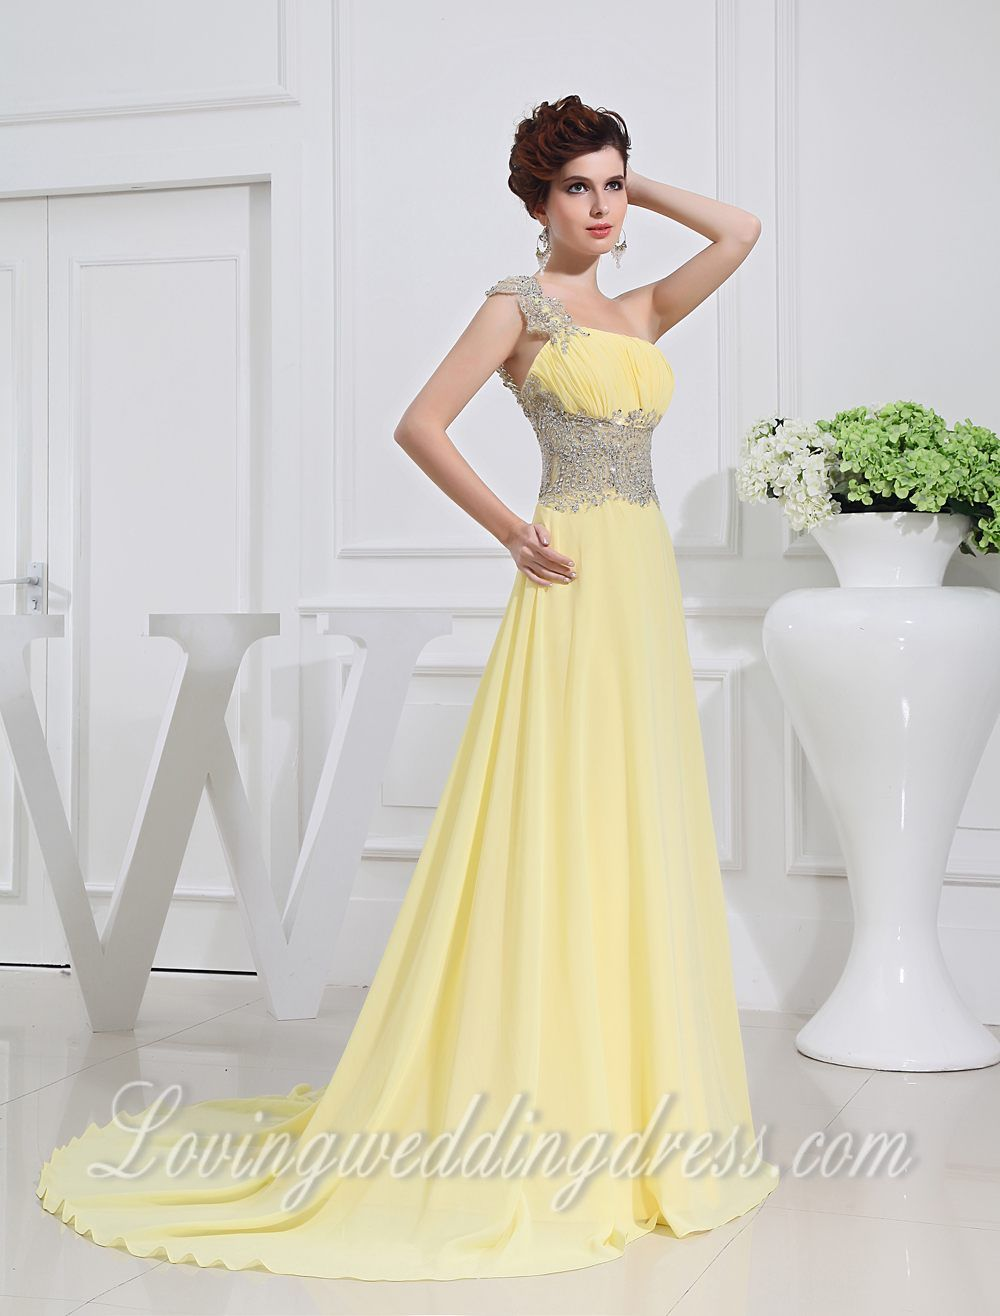 Lemon aline one shoulder sequins small trailing prom dressesfor